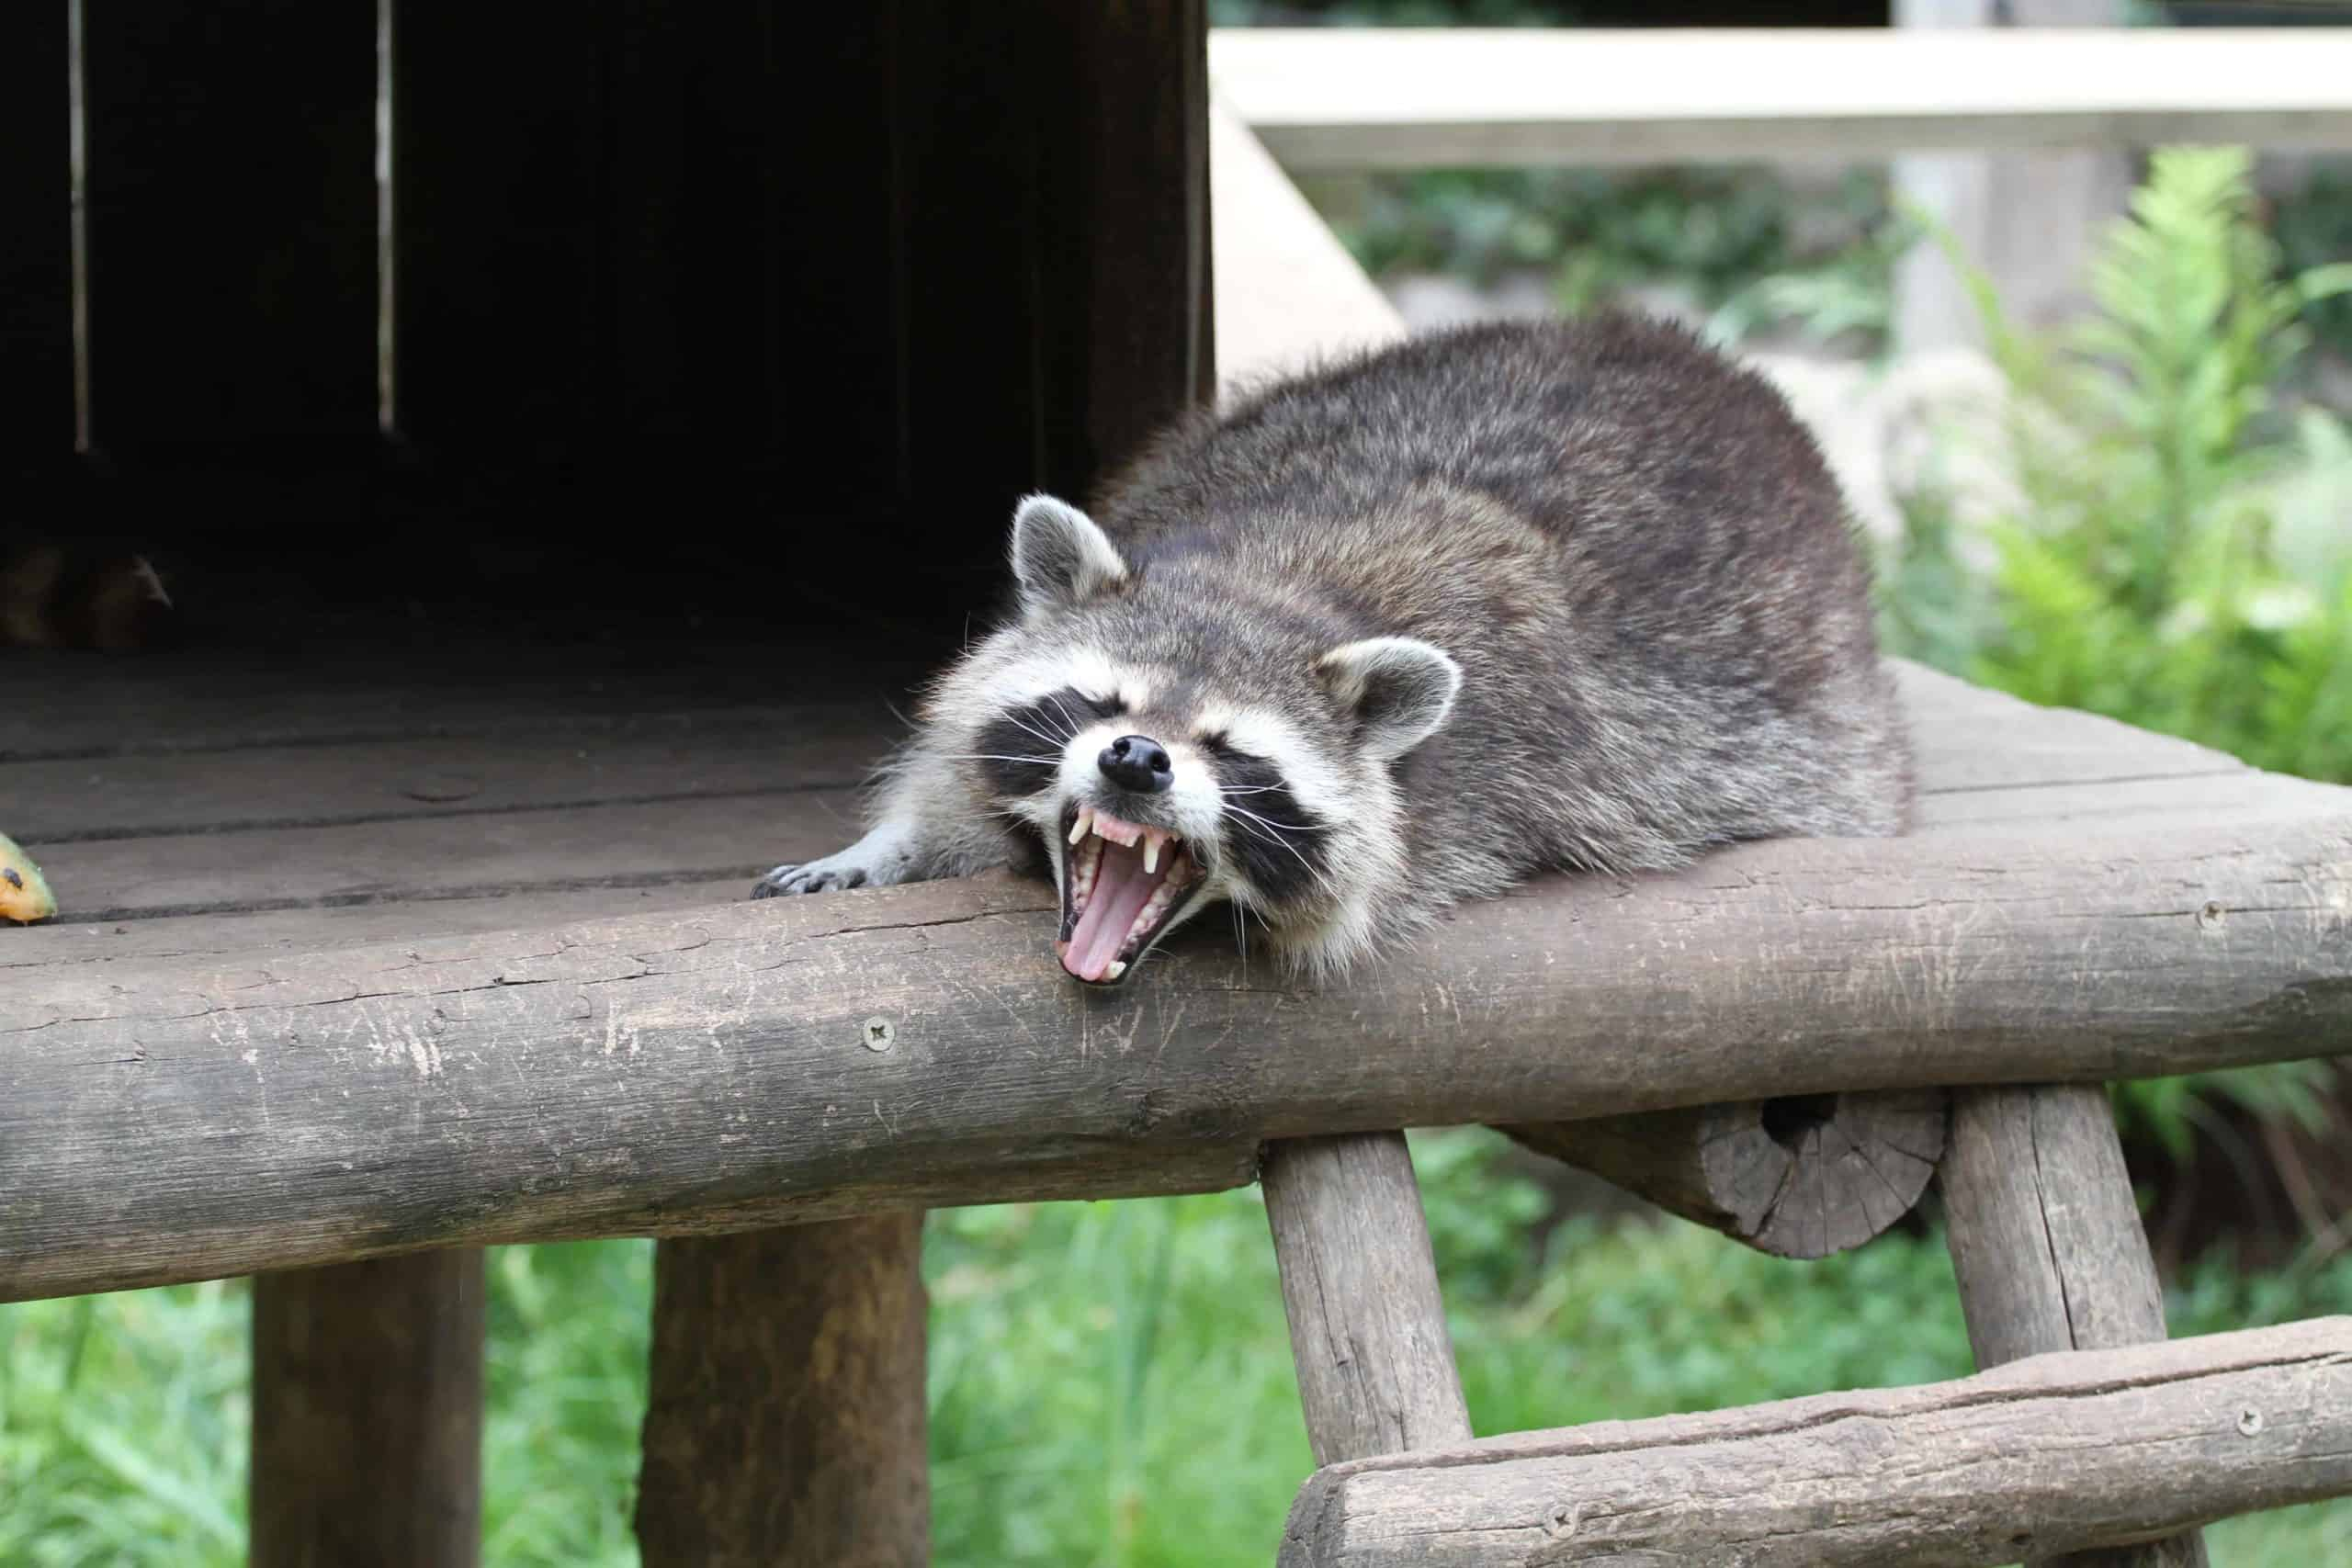 Raccoon sitting on deck snarls. Raccoons attack dogs by scratching or biting if they feel threatened. This is especially dangerous if the raccoon carries the rabies virus.